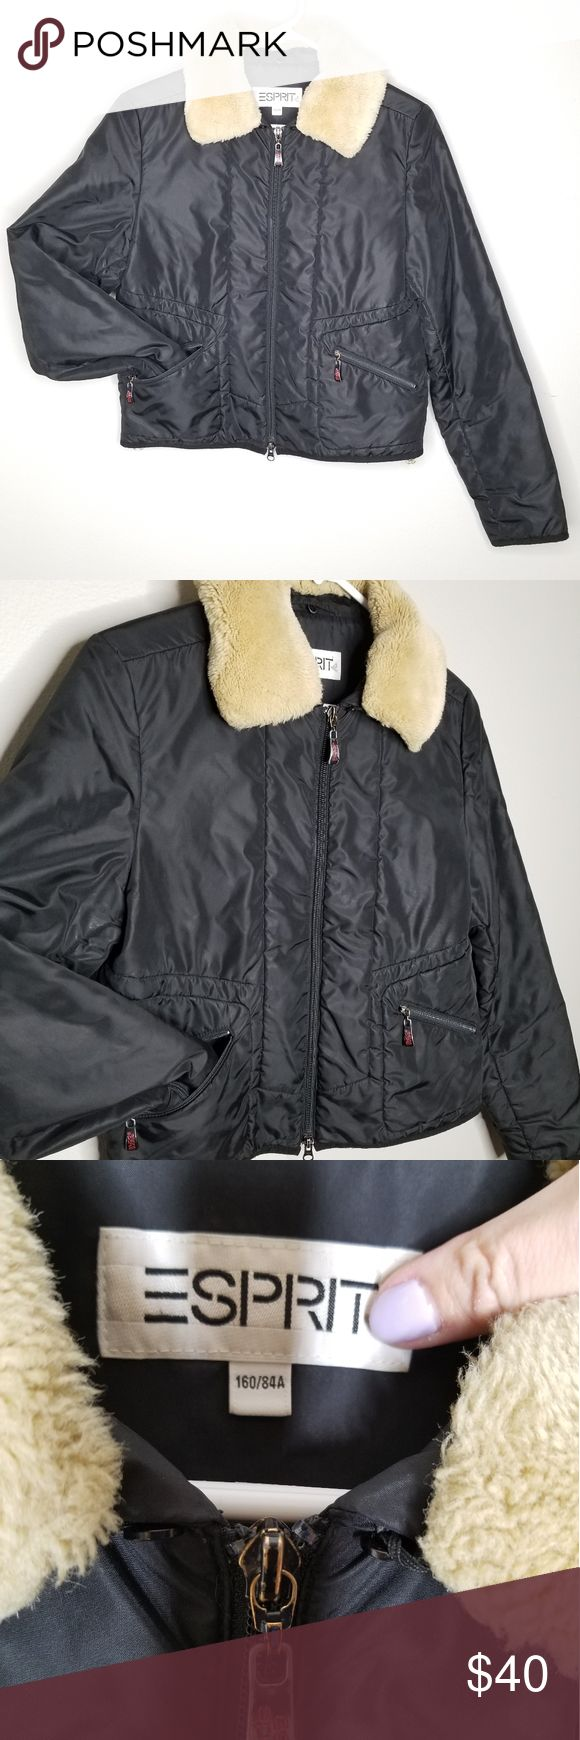 Vintage ESPRIT moto jacket w sherpa collar (With images